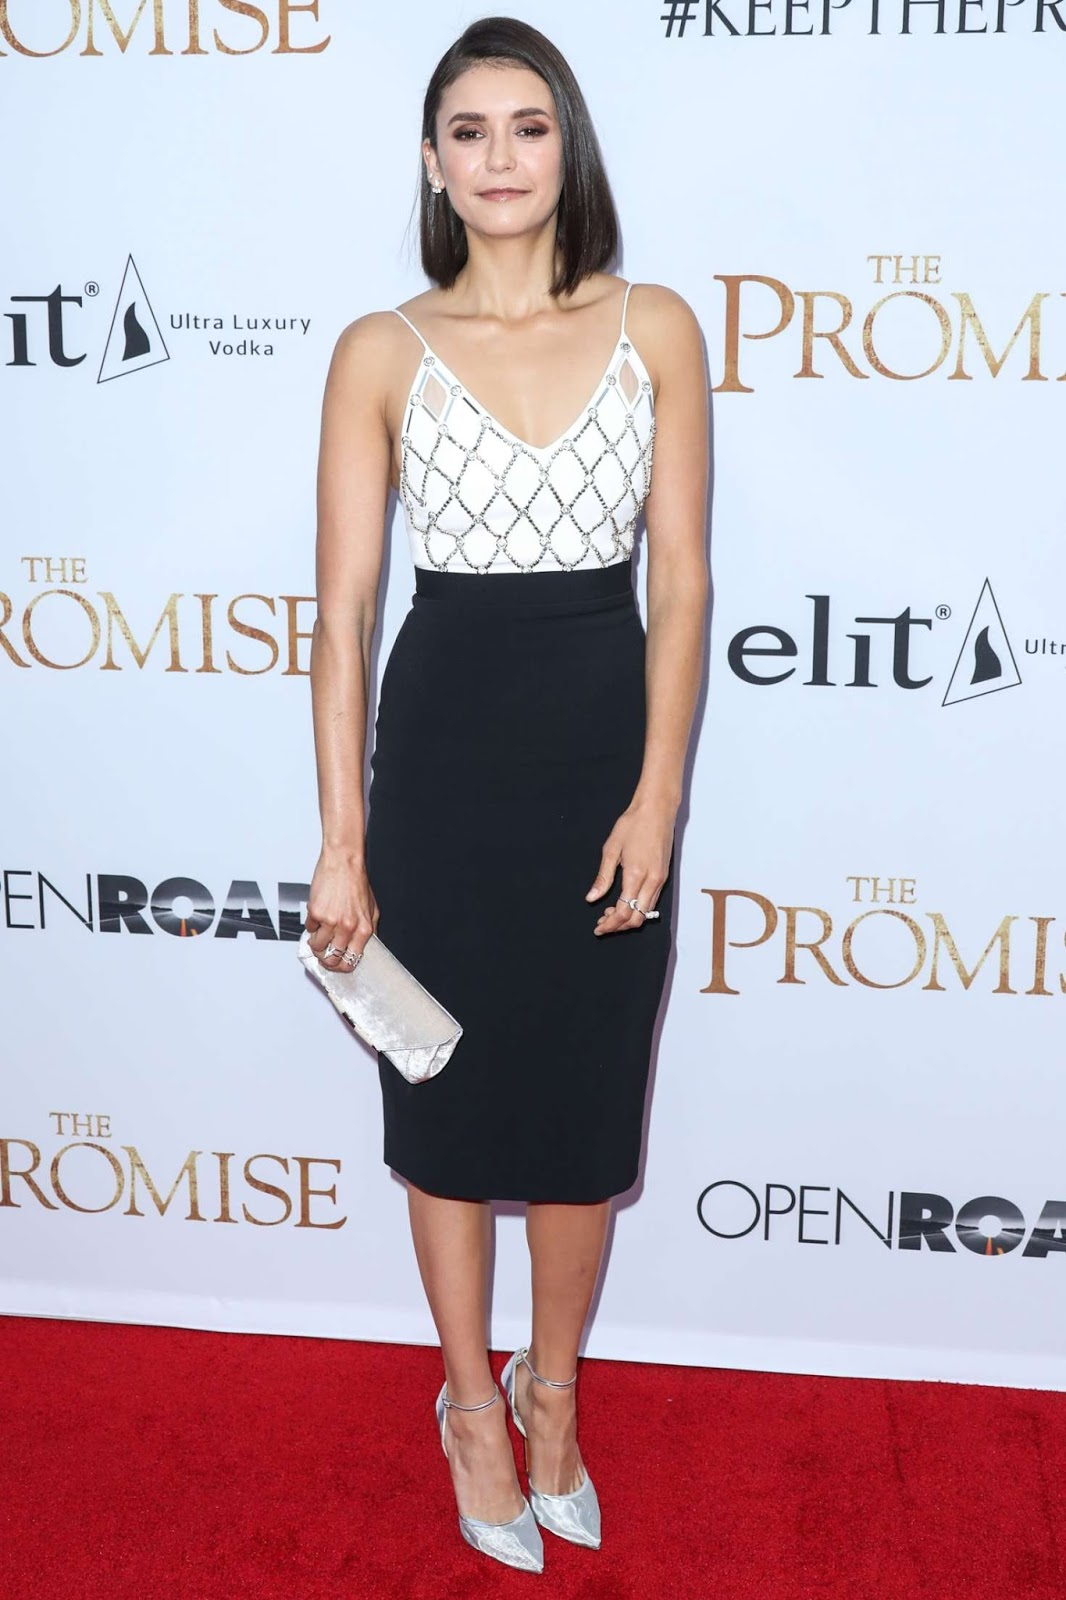 Nina Dobrev goes stylish for The Promise premiere in LA